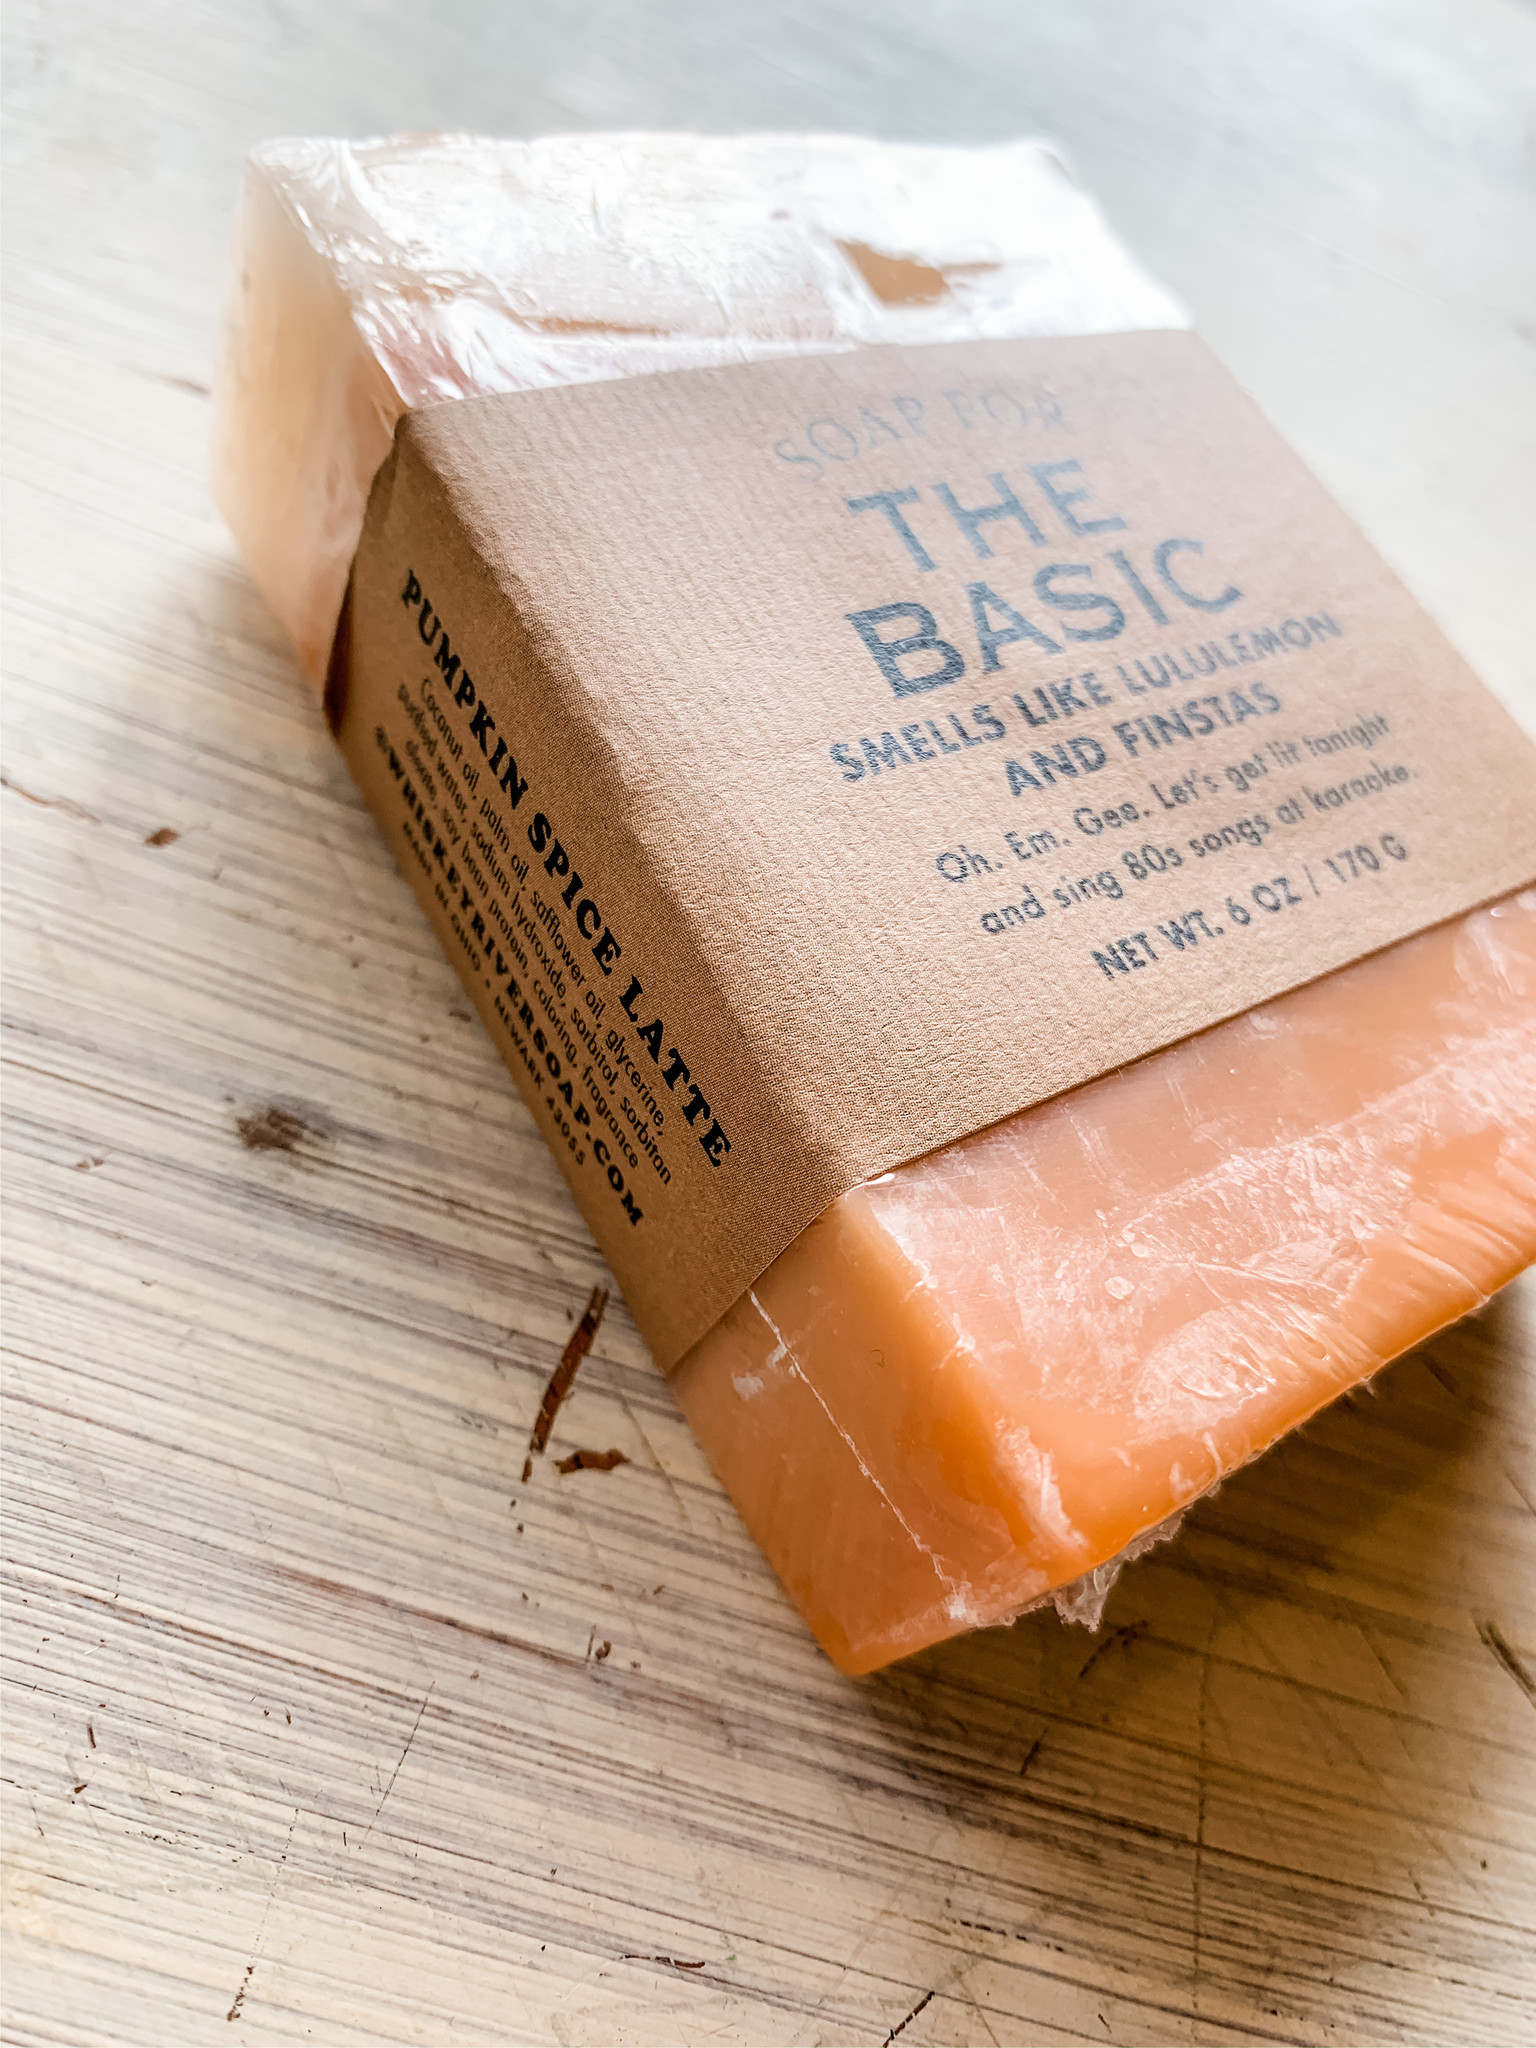 Whiskey River Soap Company Whiskey River Soap The Basic